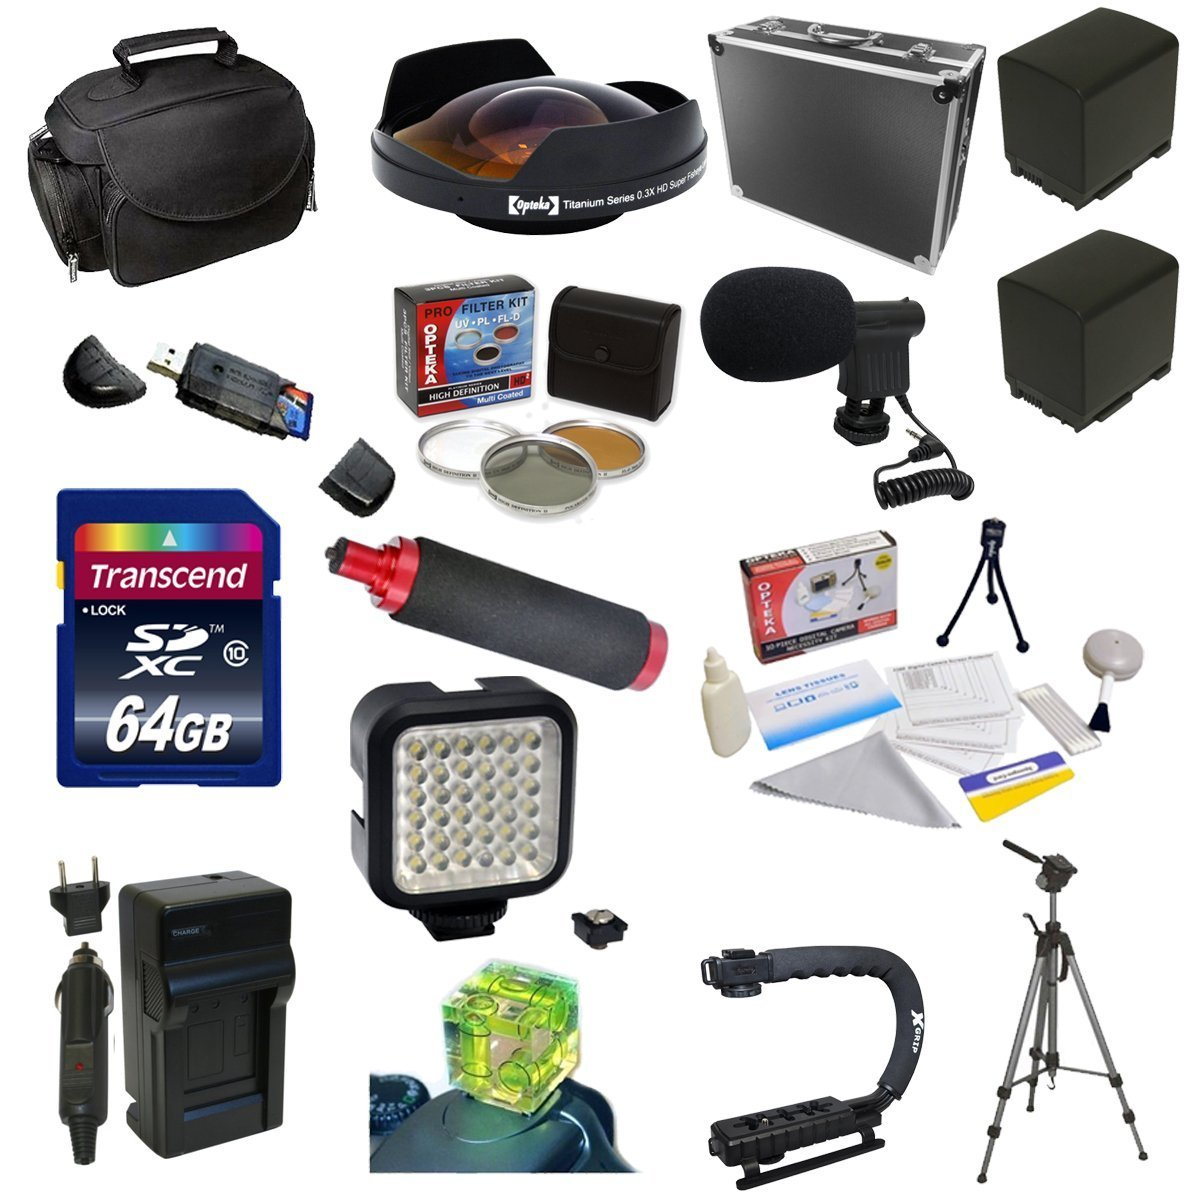 Special Edition All Sport Accessory Package For the Canon Vixia HF G10, HF G20, HF G30, HF S20, HF S21, HF S30, HF S200 Includes 64GB High Speed Error Free SDHC Memory Card + Professional 5 Piece Filter Kit (UV, CPL, FL, ND4 and 10x Macro Lens) + 0.3X Hig